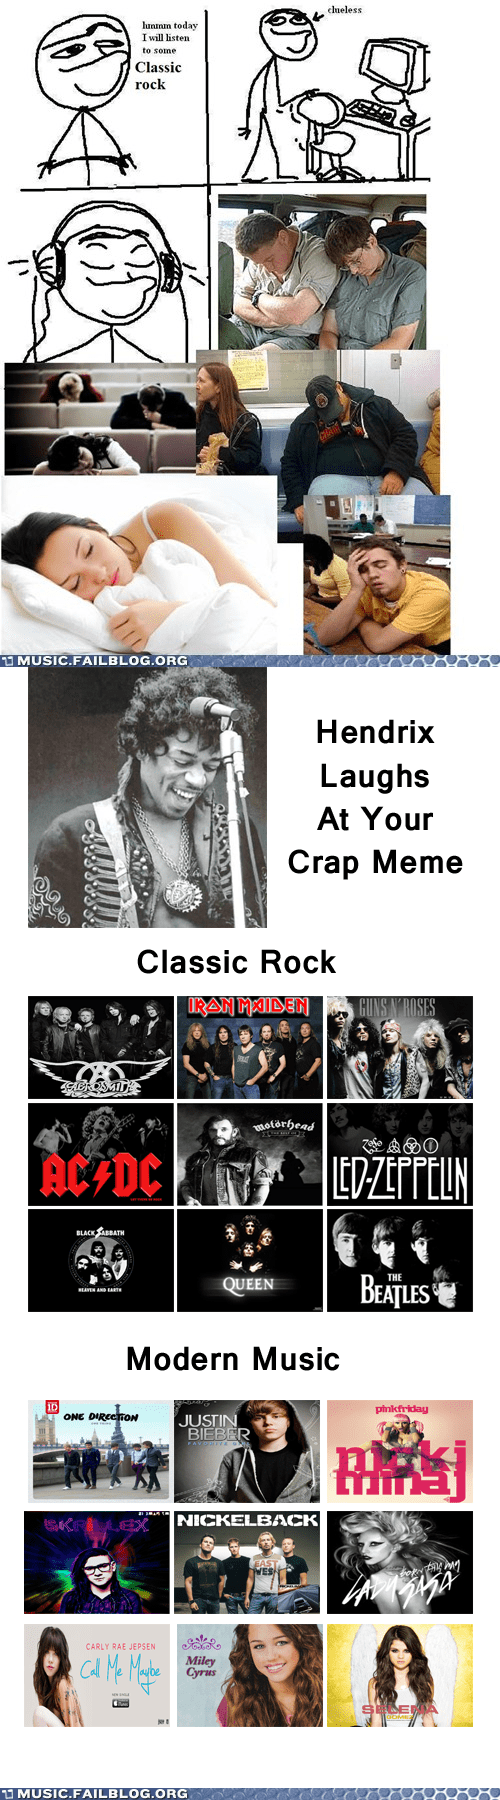 classic rock,comic,hendrix,jimi hendrix,rage comic,today i will listen to so